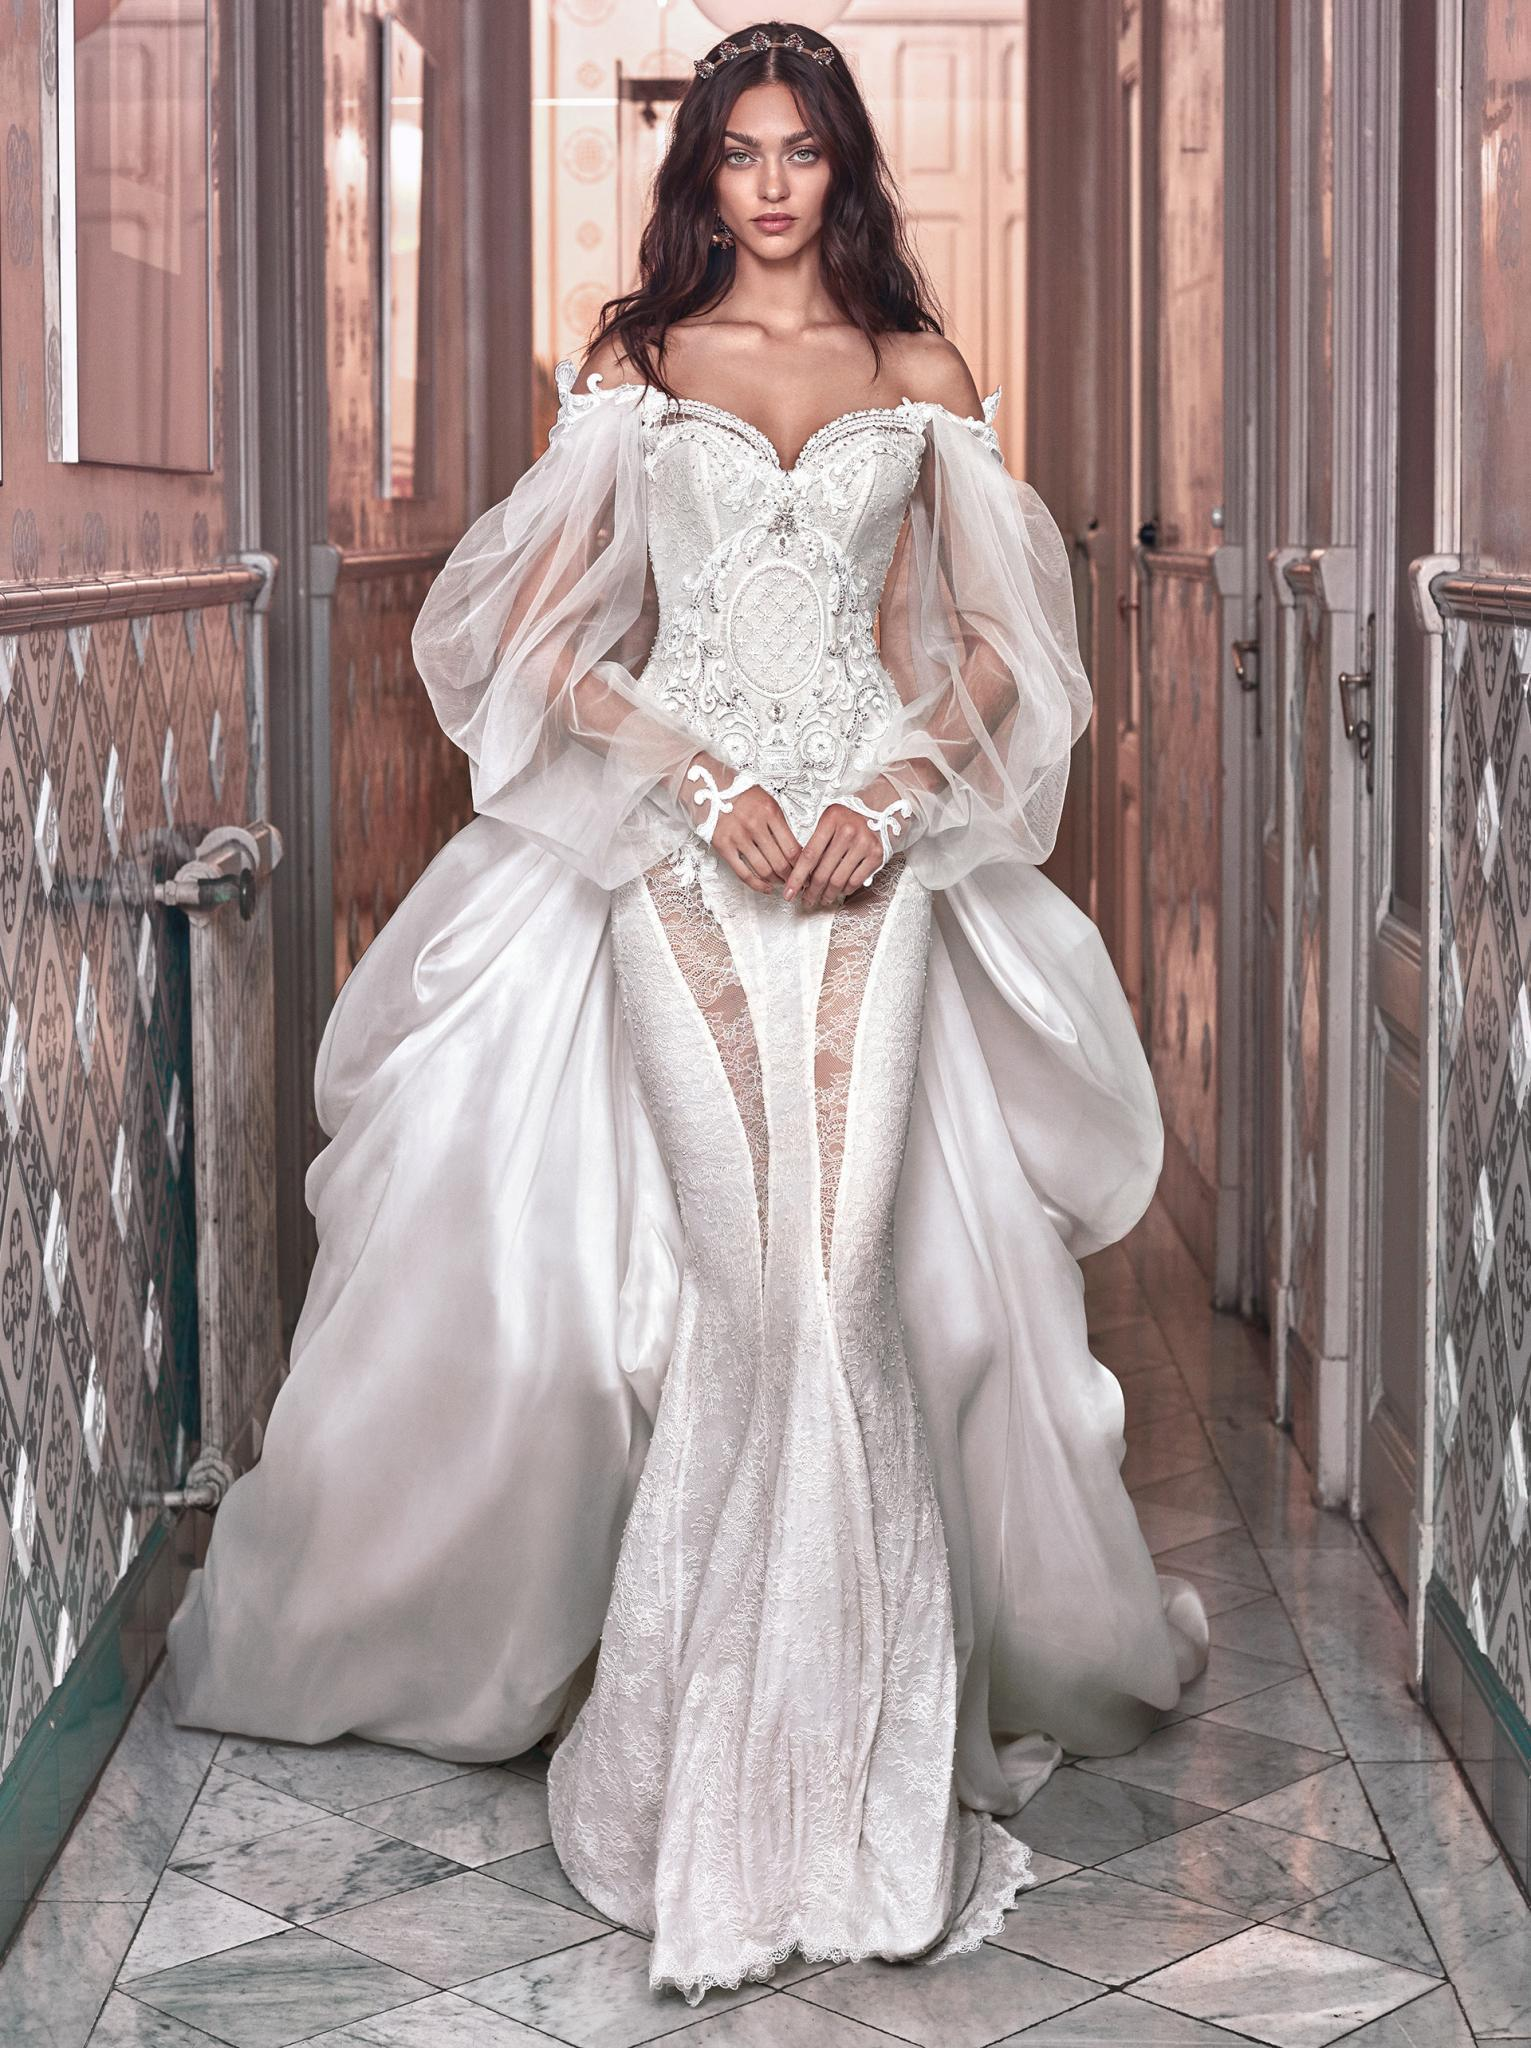 Thelma victorian affinity bridal dresses galia lahav thelma victorian affinity galia lahav junglespirit Gallery